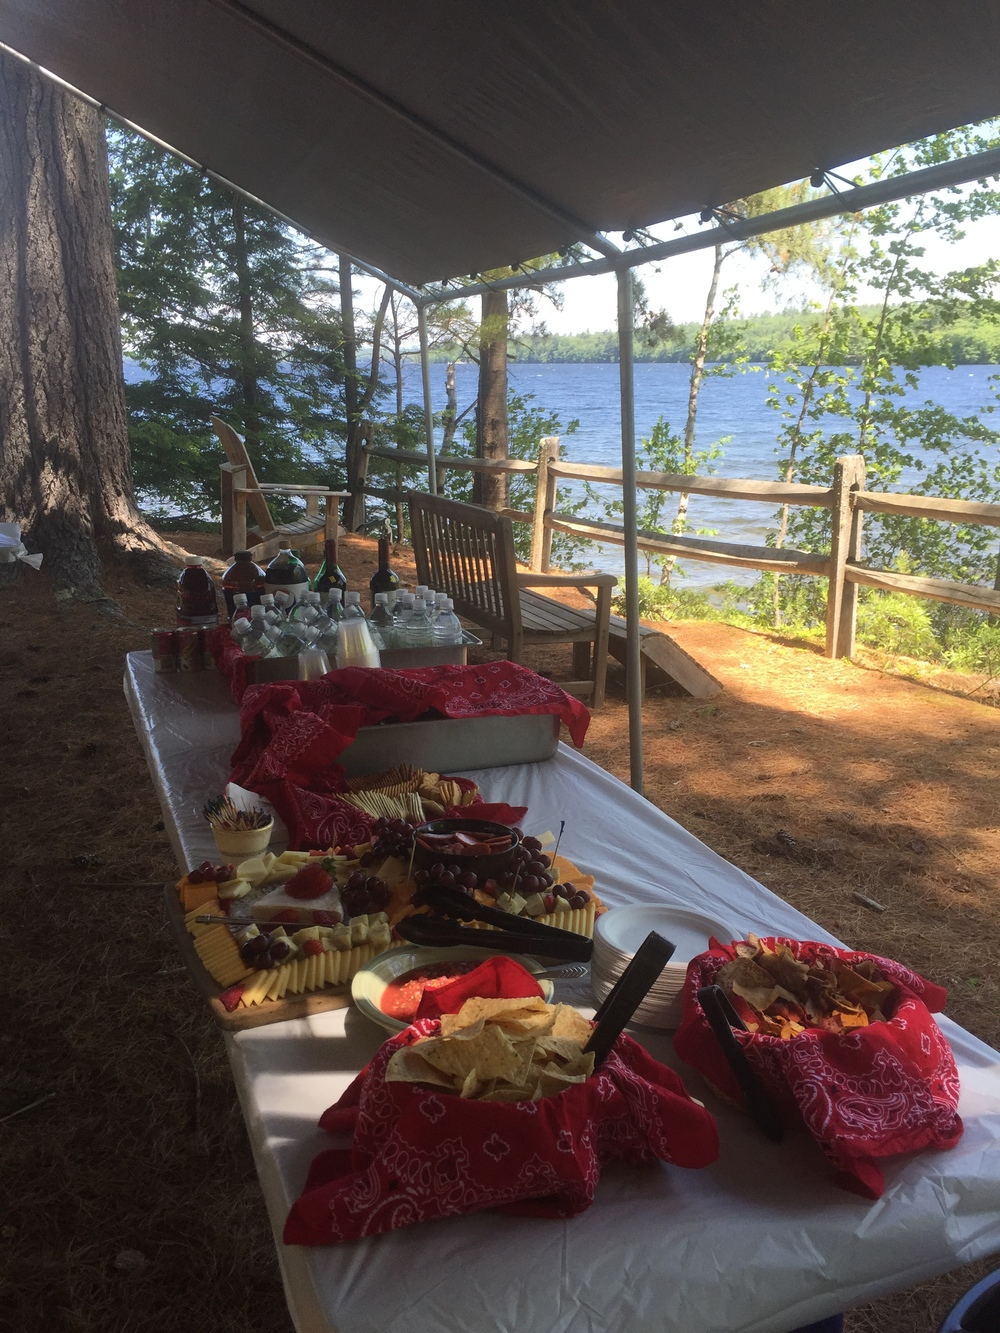 Wherever your event Lake Region Caterers will help you celebrate lifeu0027s important and special events whether in your home place of business or venue. & Lake Region Caterers